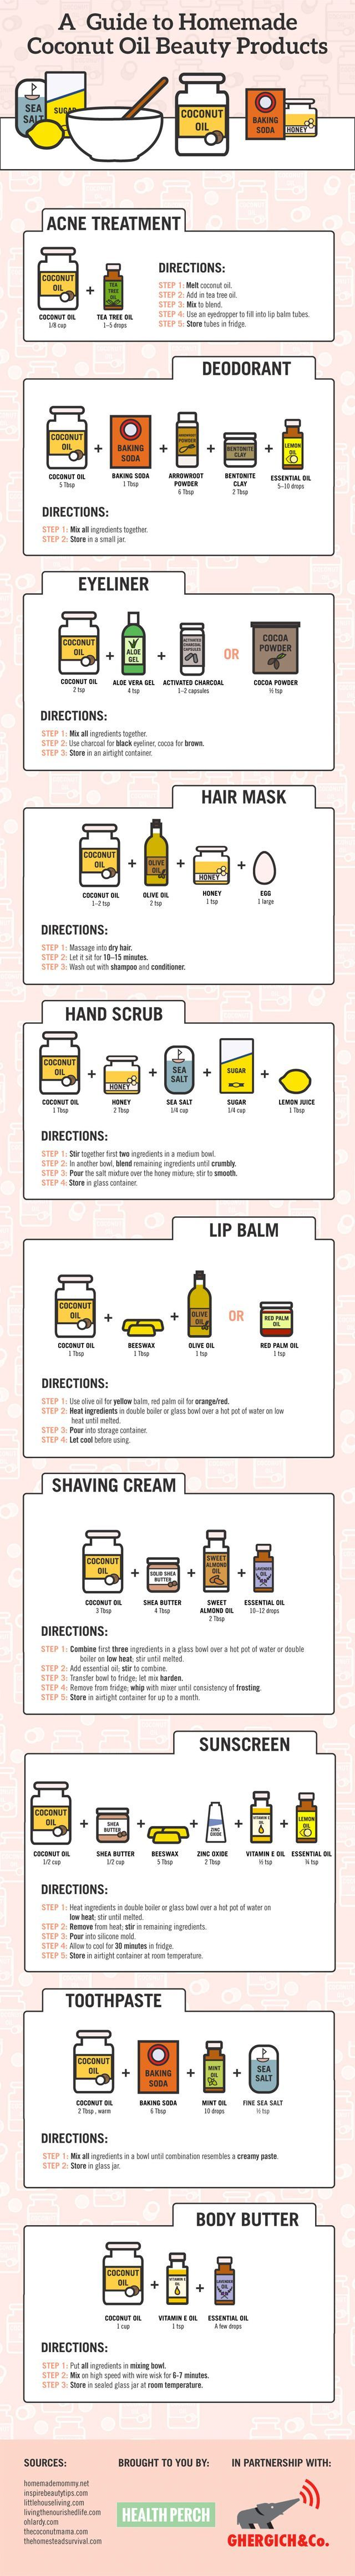 Homemade Coconut Oil Beauty Products